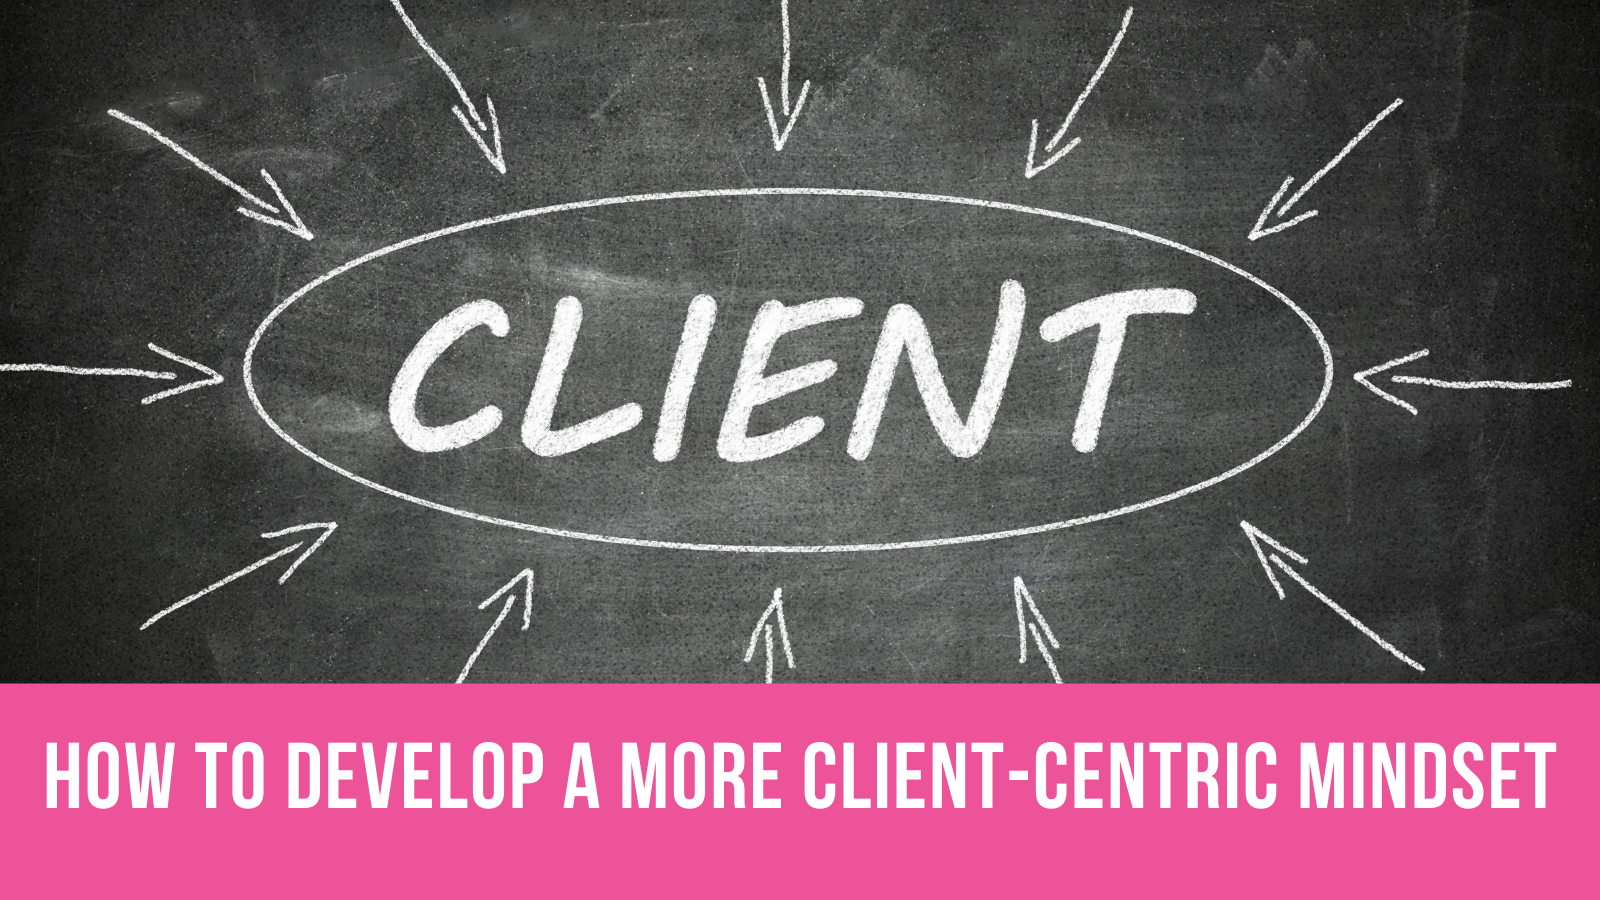 How to Develop a More Client-Centric Mindset